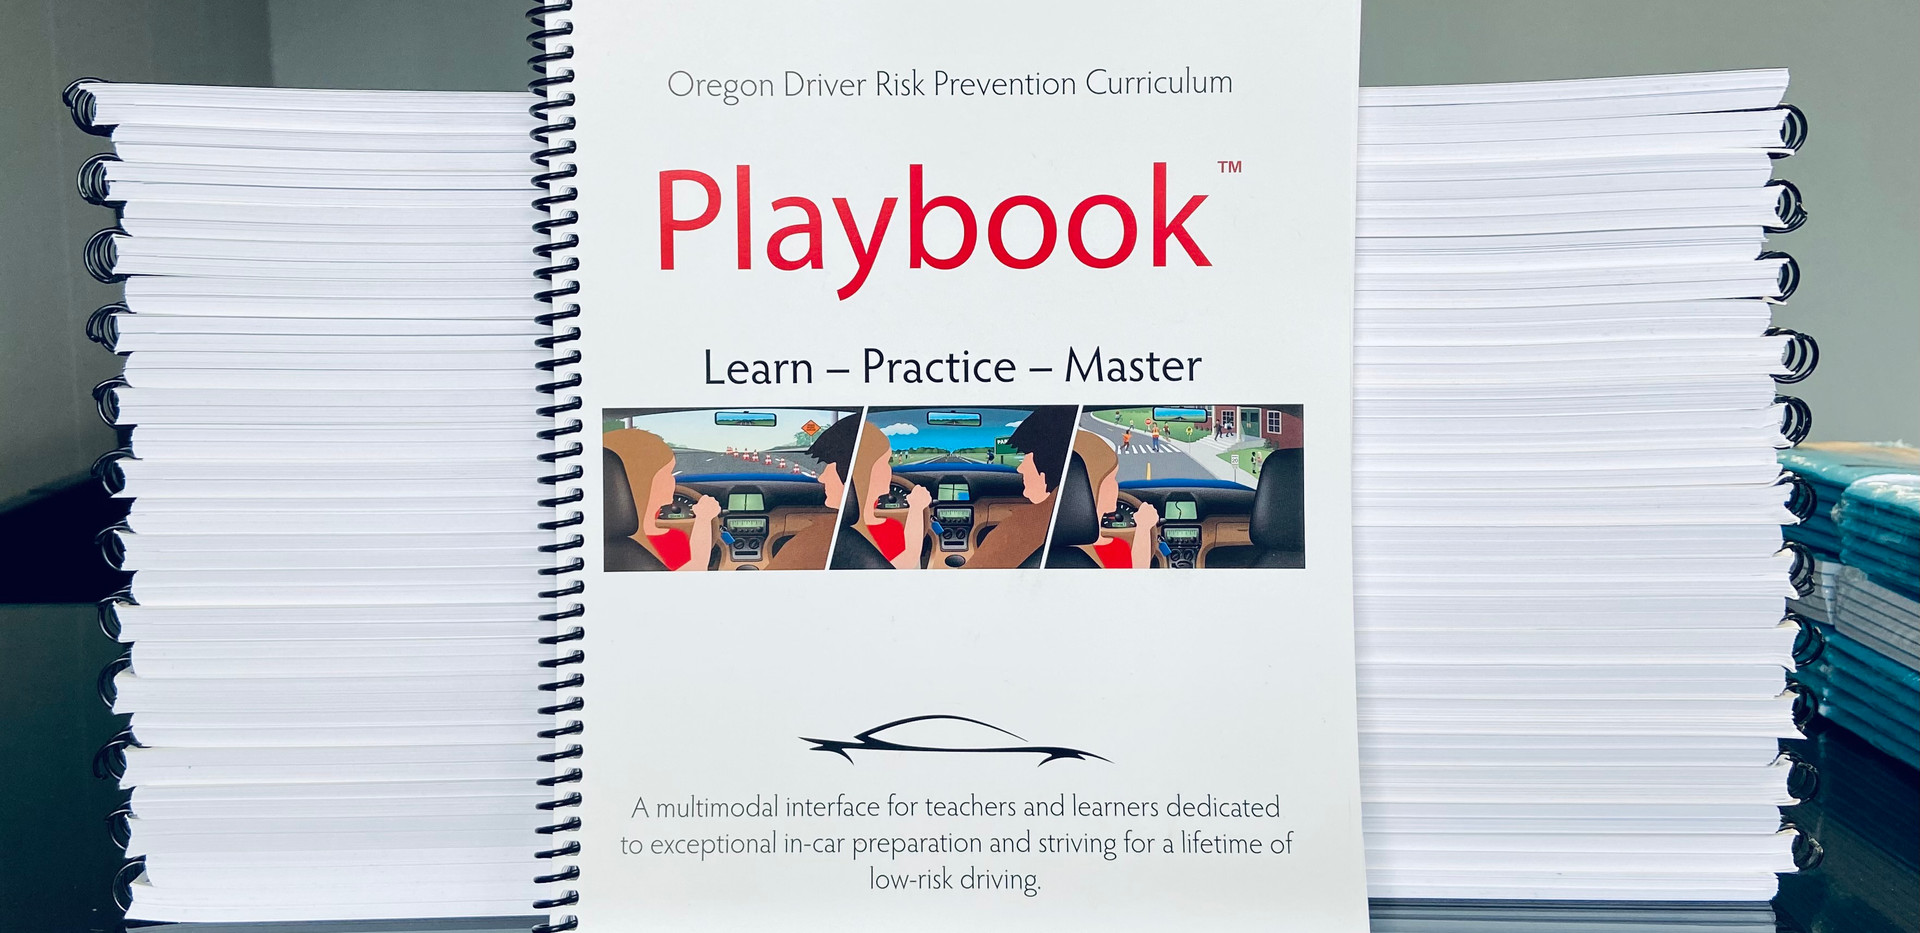 ODOT-Approved Curriculum